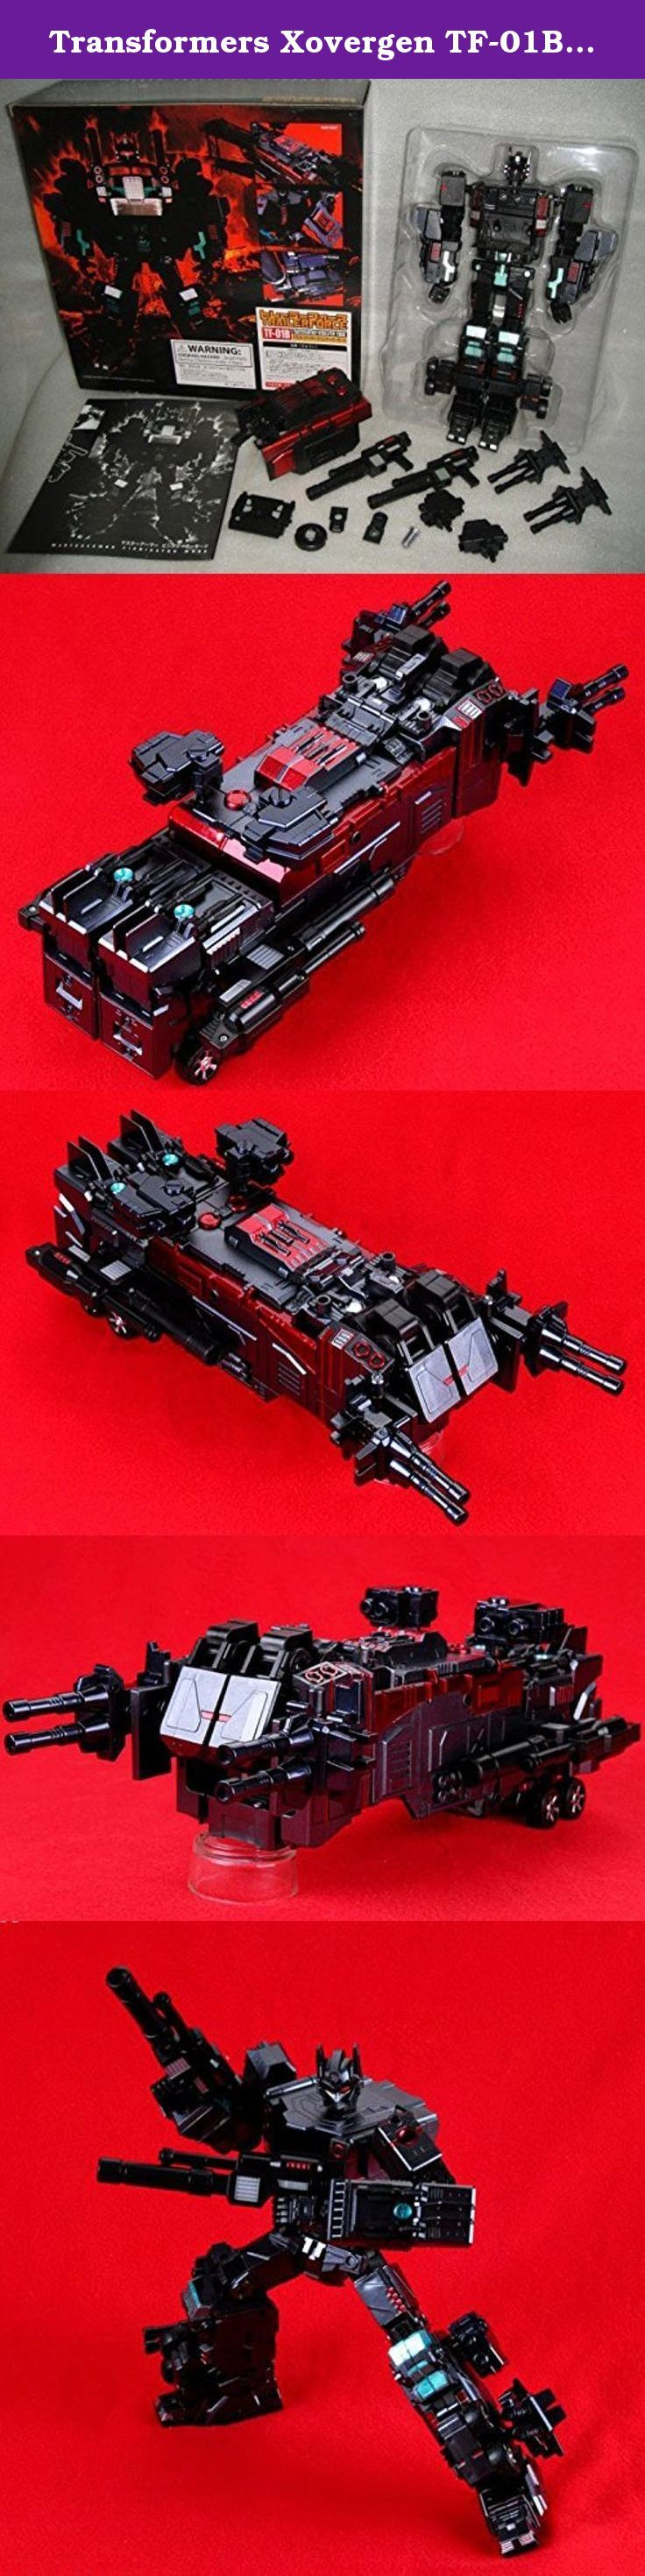 Transformers Xovergen TF-01B Trailer Force Black Nemesis Version. Transformers Xovergen TF-01B Trailer Force Black Nemesis Version.